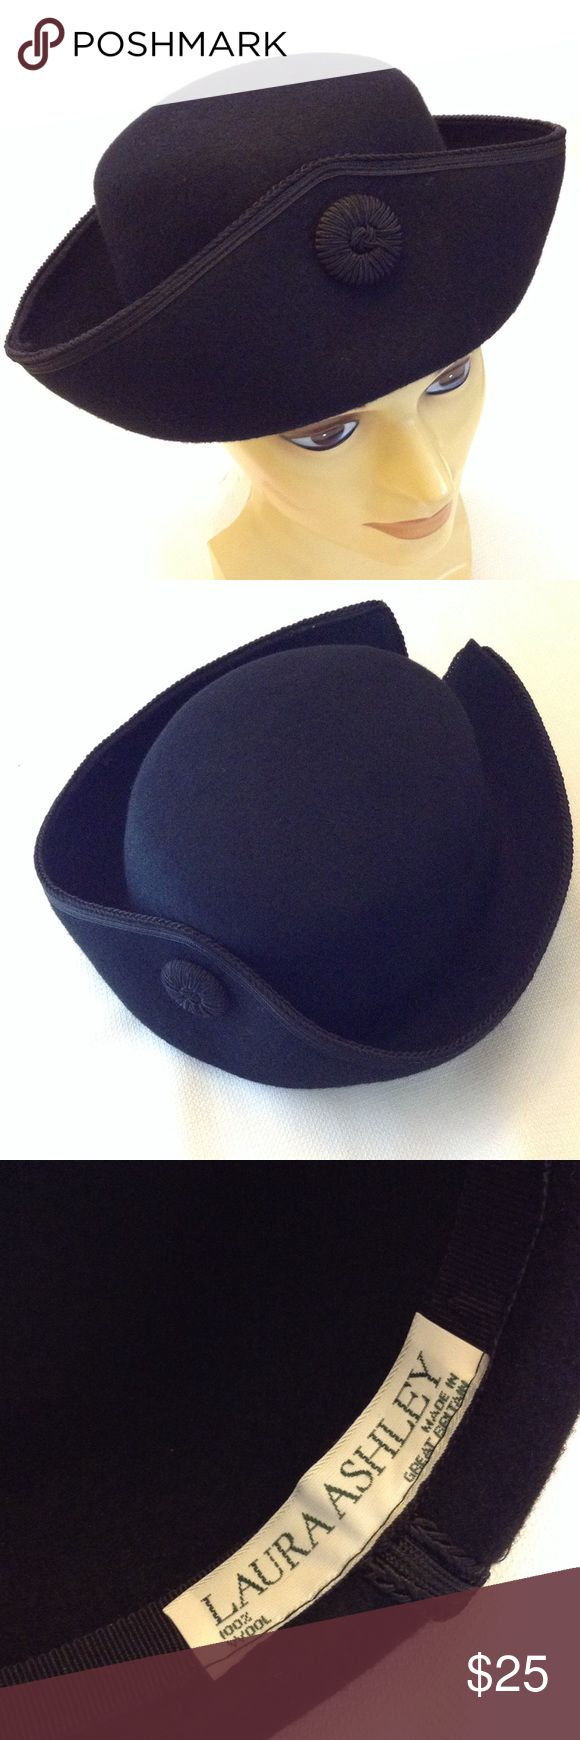 Laura Ashley Vintage Tricorn Wool Hat Vintage 80's or 90's, excellent condition, Paul Revere style Tricorn hat 100% wool, made in Great Britain. Laura Ashley Accessories Hats